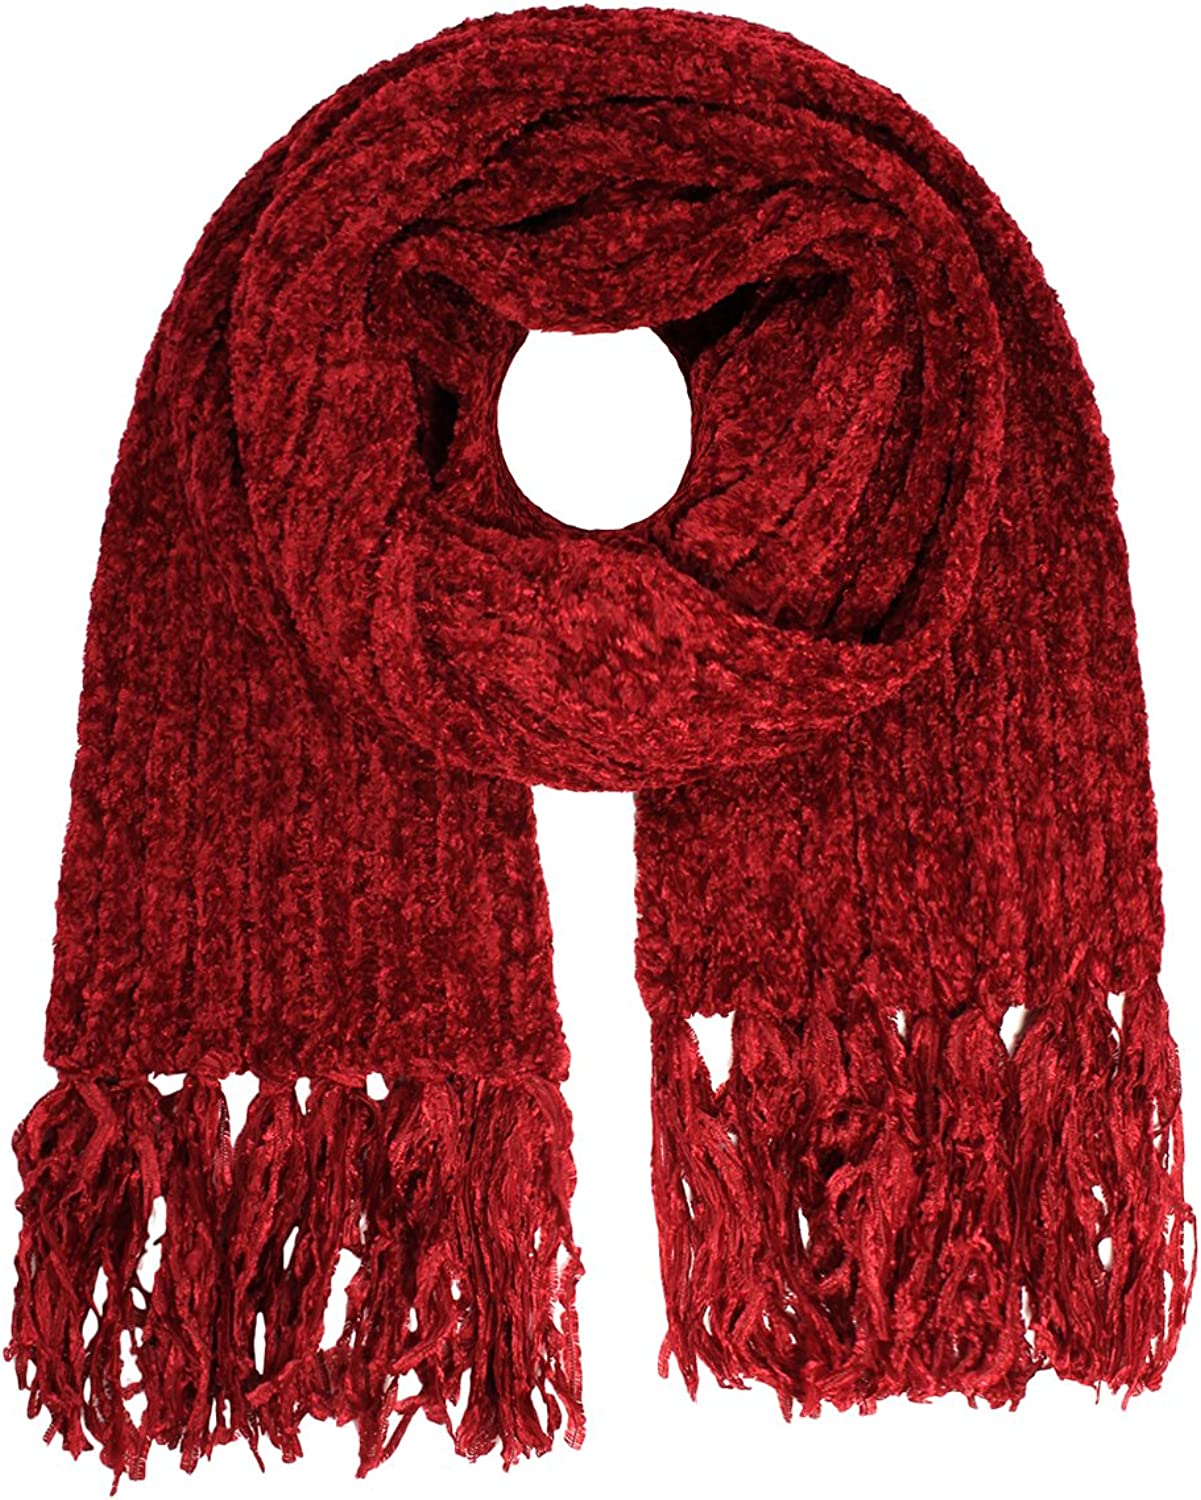 Charter Club Women's Chenille Shaker Scarf,One Size